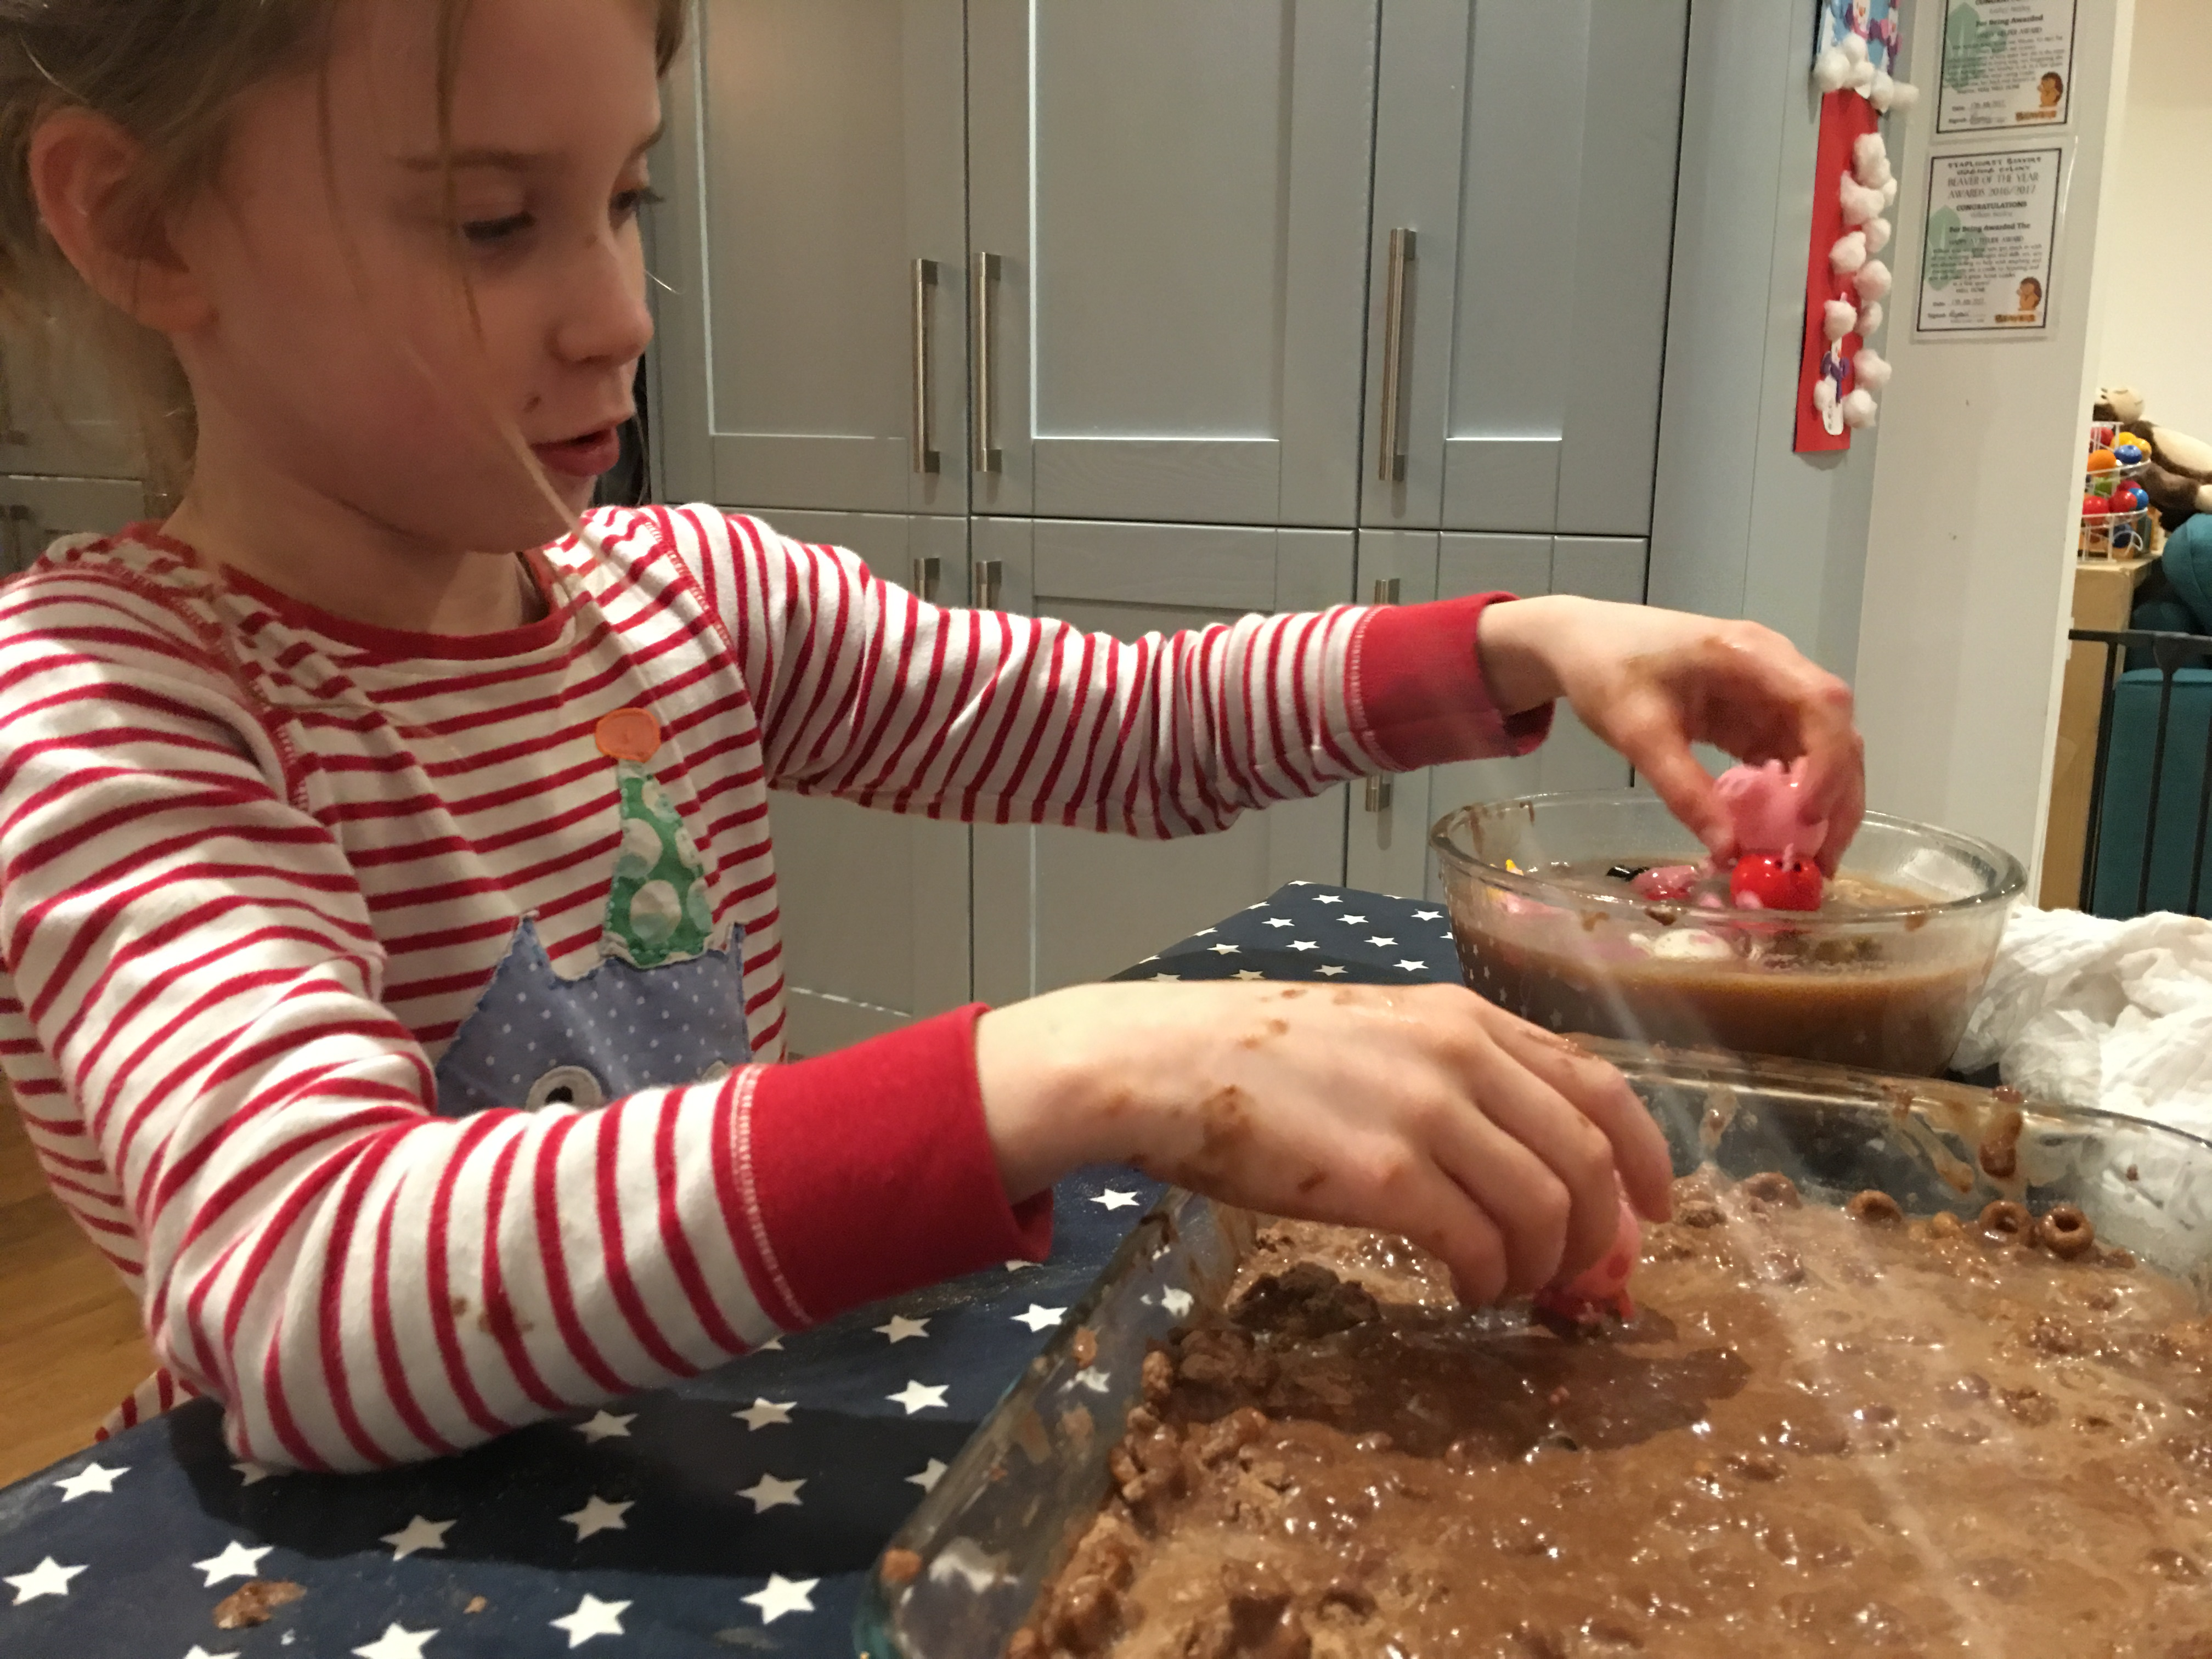 play with edible mud